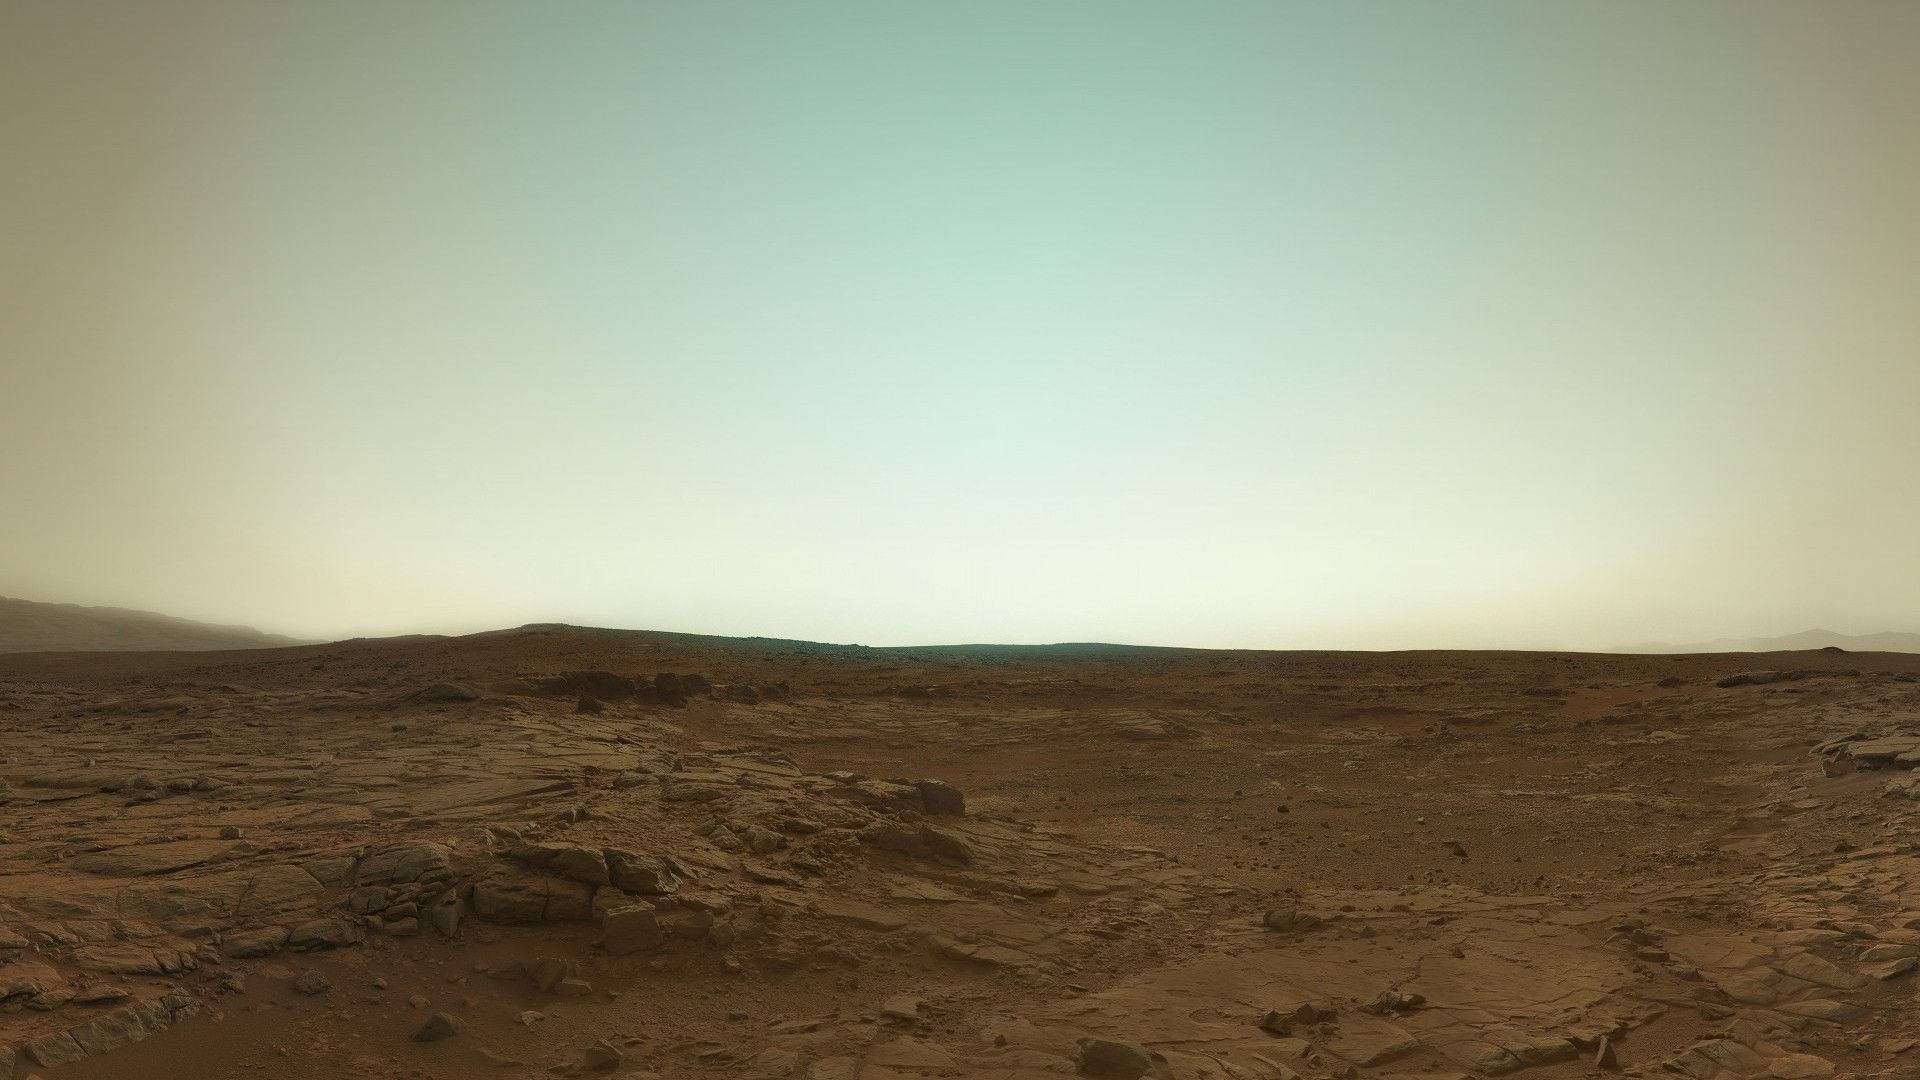 Res: 1920x1080, Mars in true color from the rover Curiosity